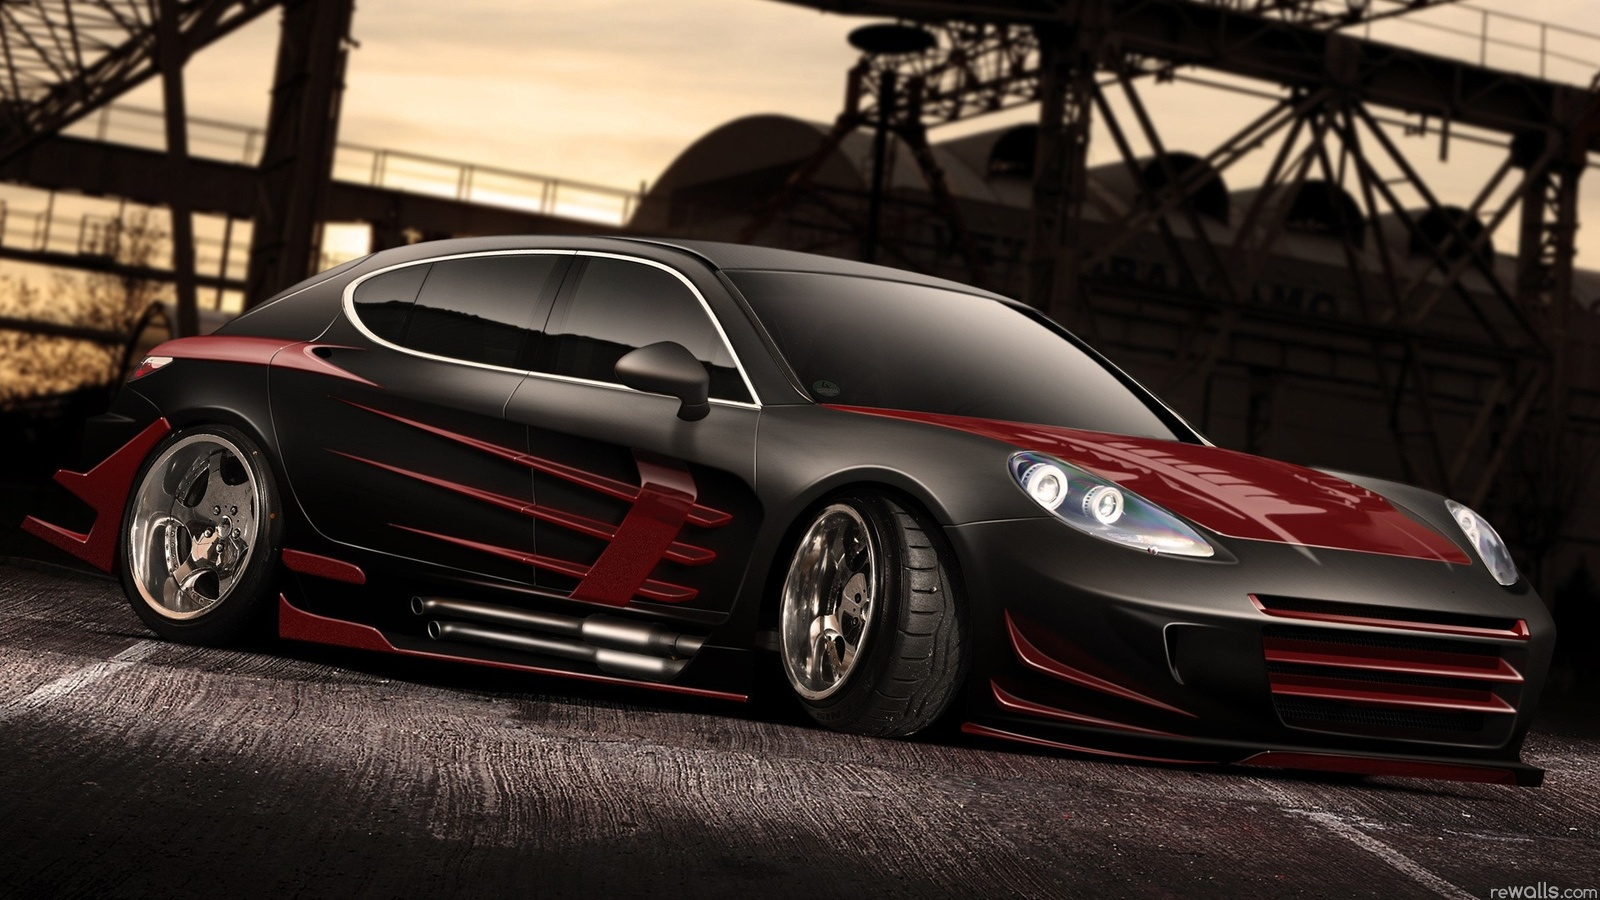 http://2.bp.blogspot.com/-3ZChXoDFoXw/Tf5TS0LayGI/AAAAAAAAAQg/JlRRdvApj2I/s1600/Super%20Tuning%20Car%20HD%20Wallpaper.jpg